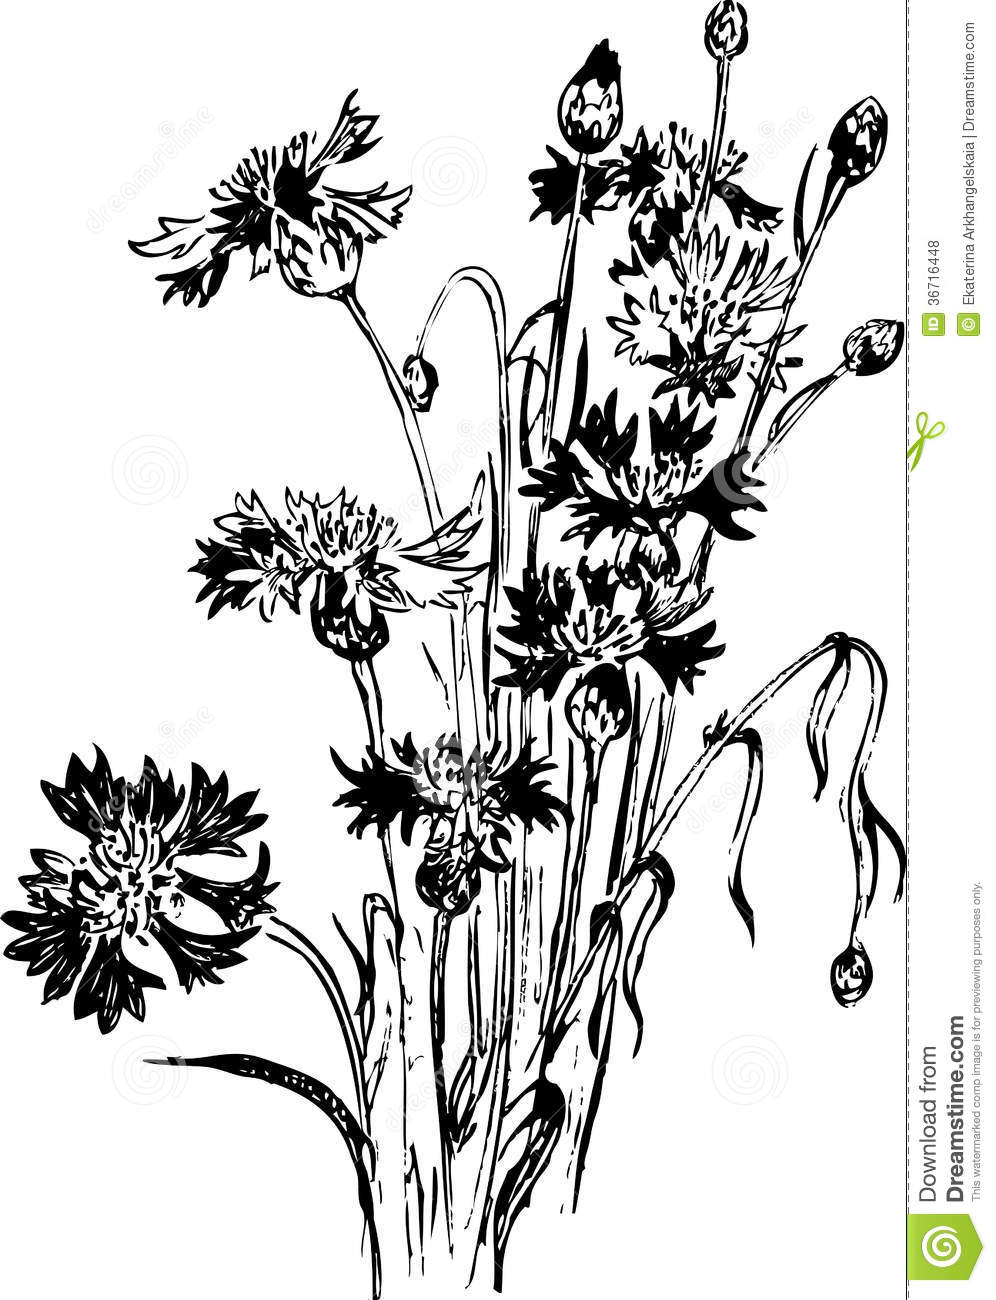 Wildflower Line Drawing : Vintage floral composition with wildflowers stock vector